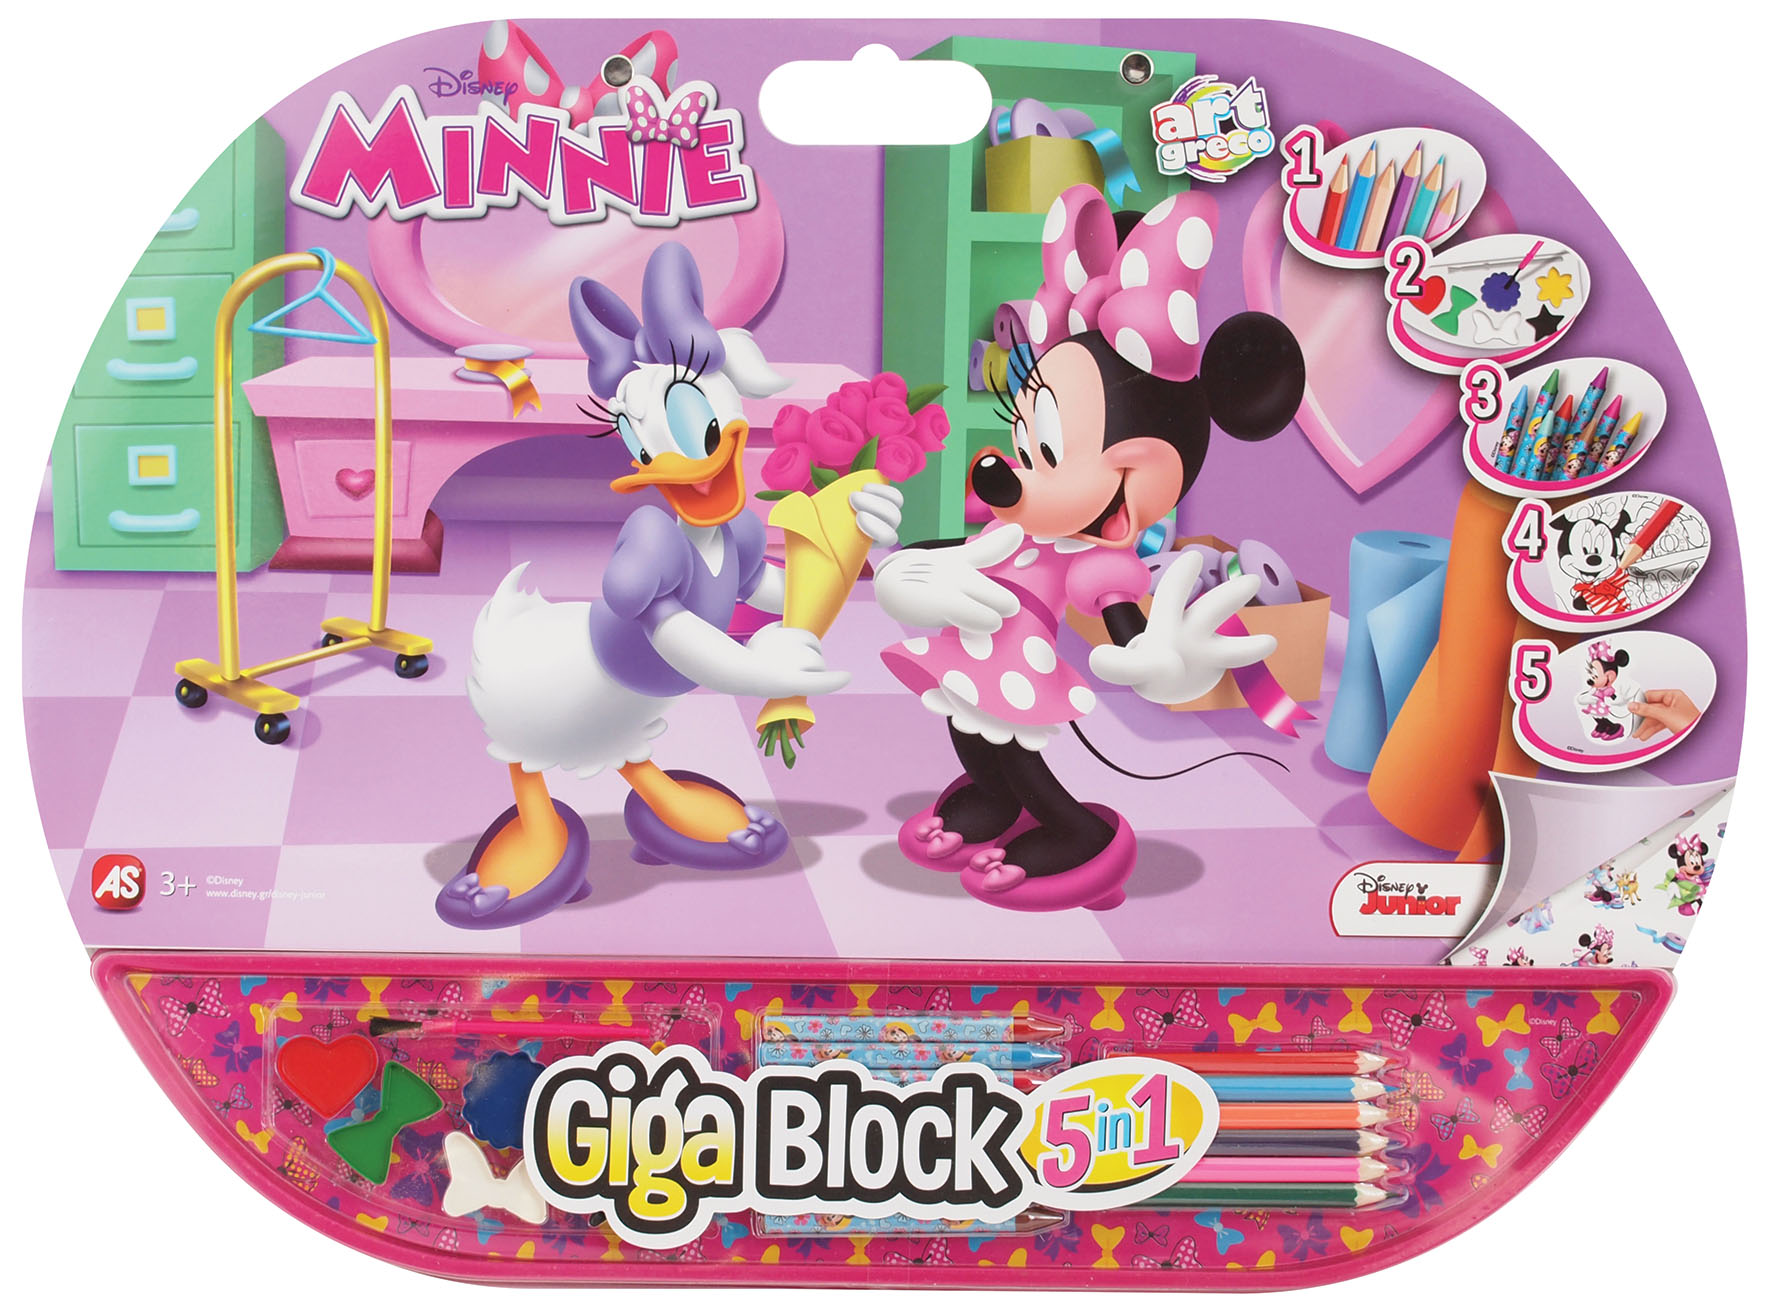 GIGA BLOCK MINNIE 5 IN 1